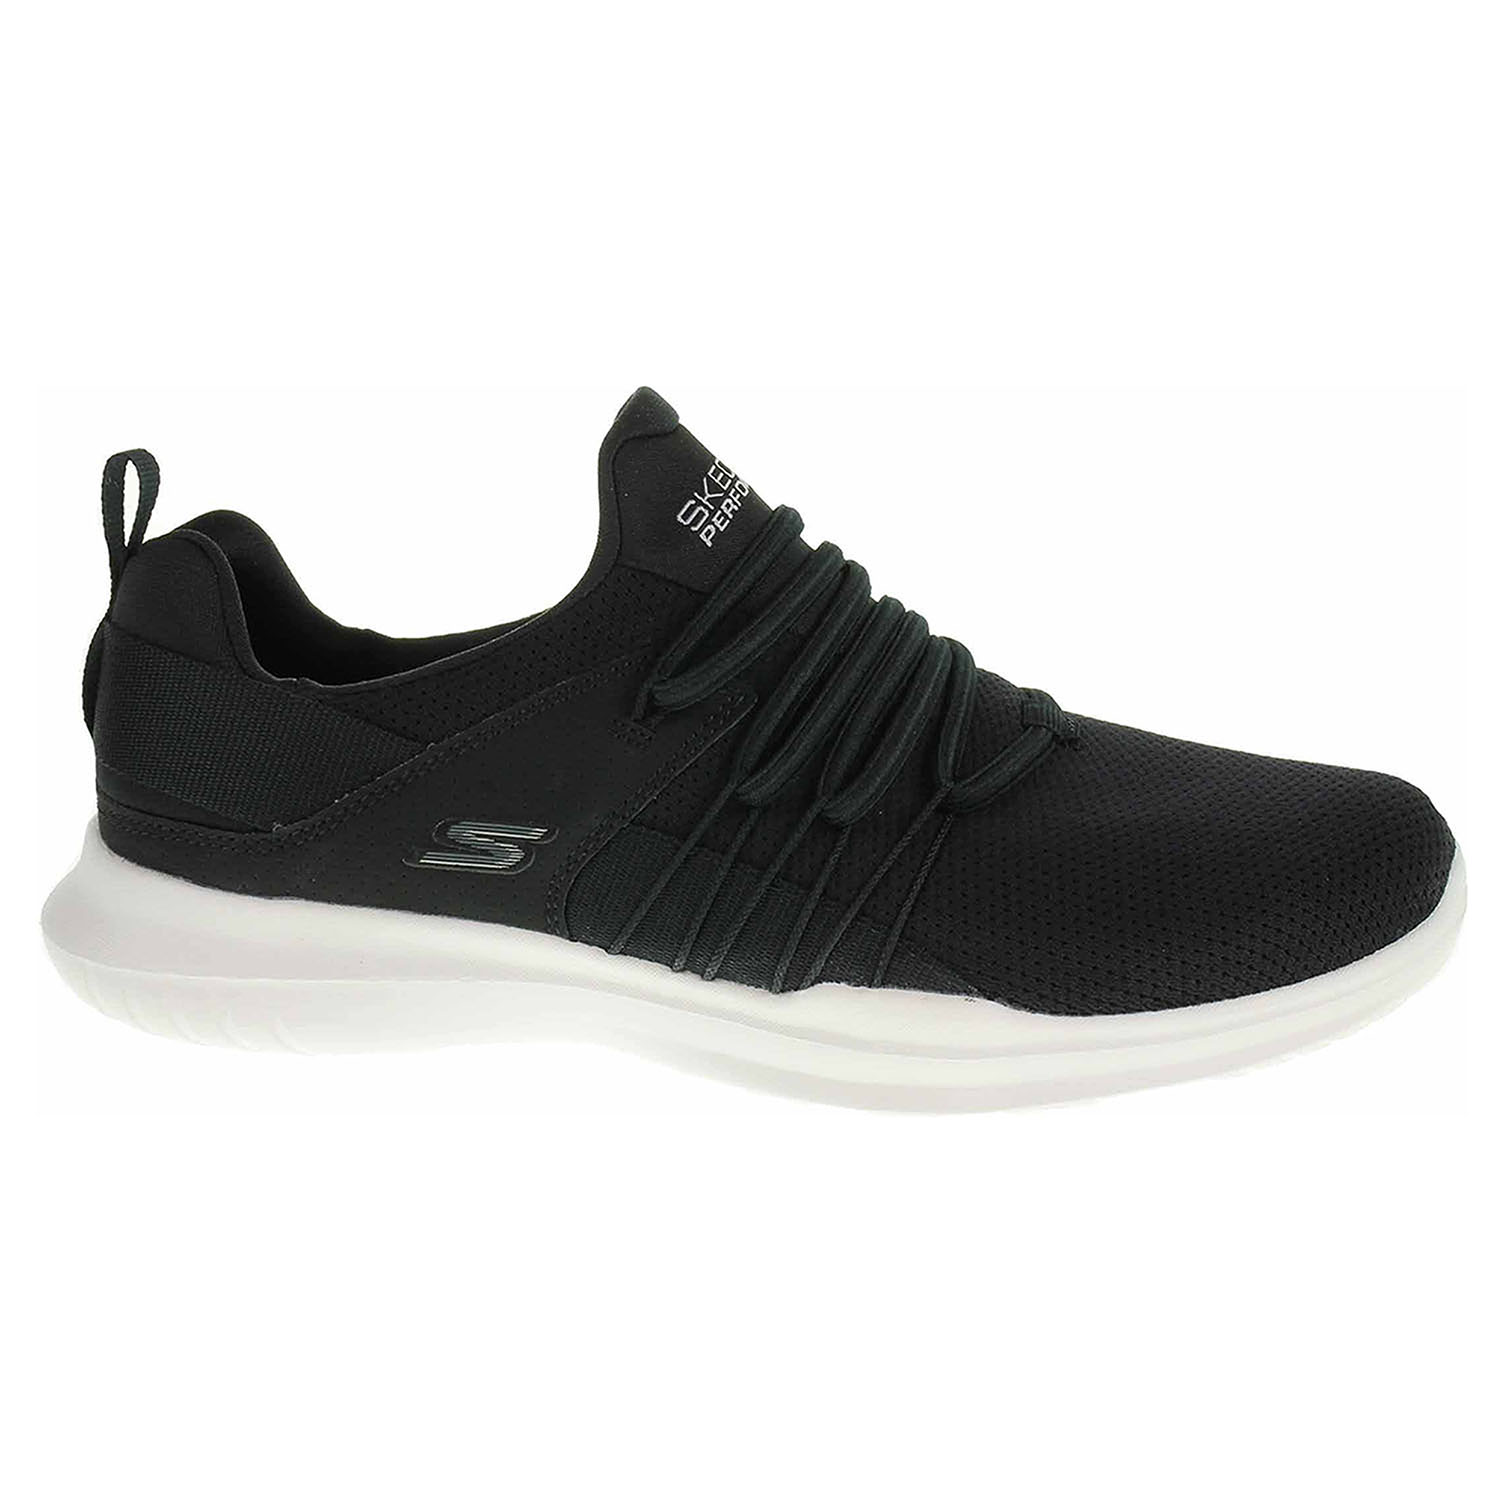 Skechers Go Run Mojo - Reactivate black-white 14843 BKW 41